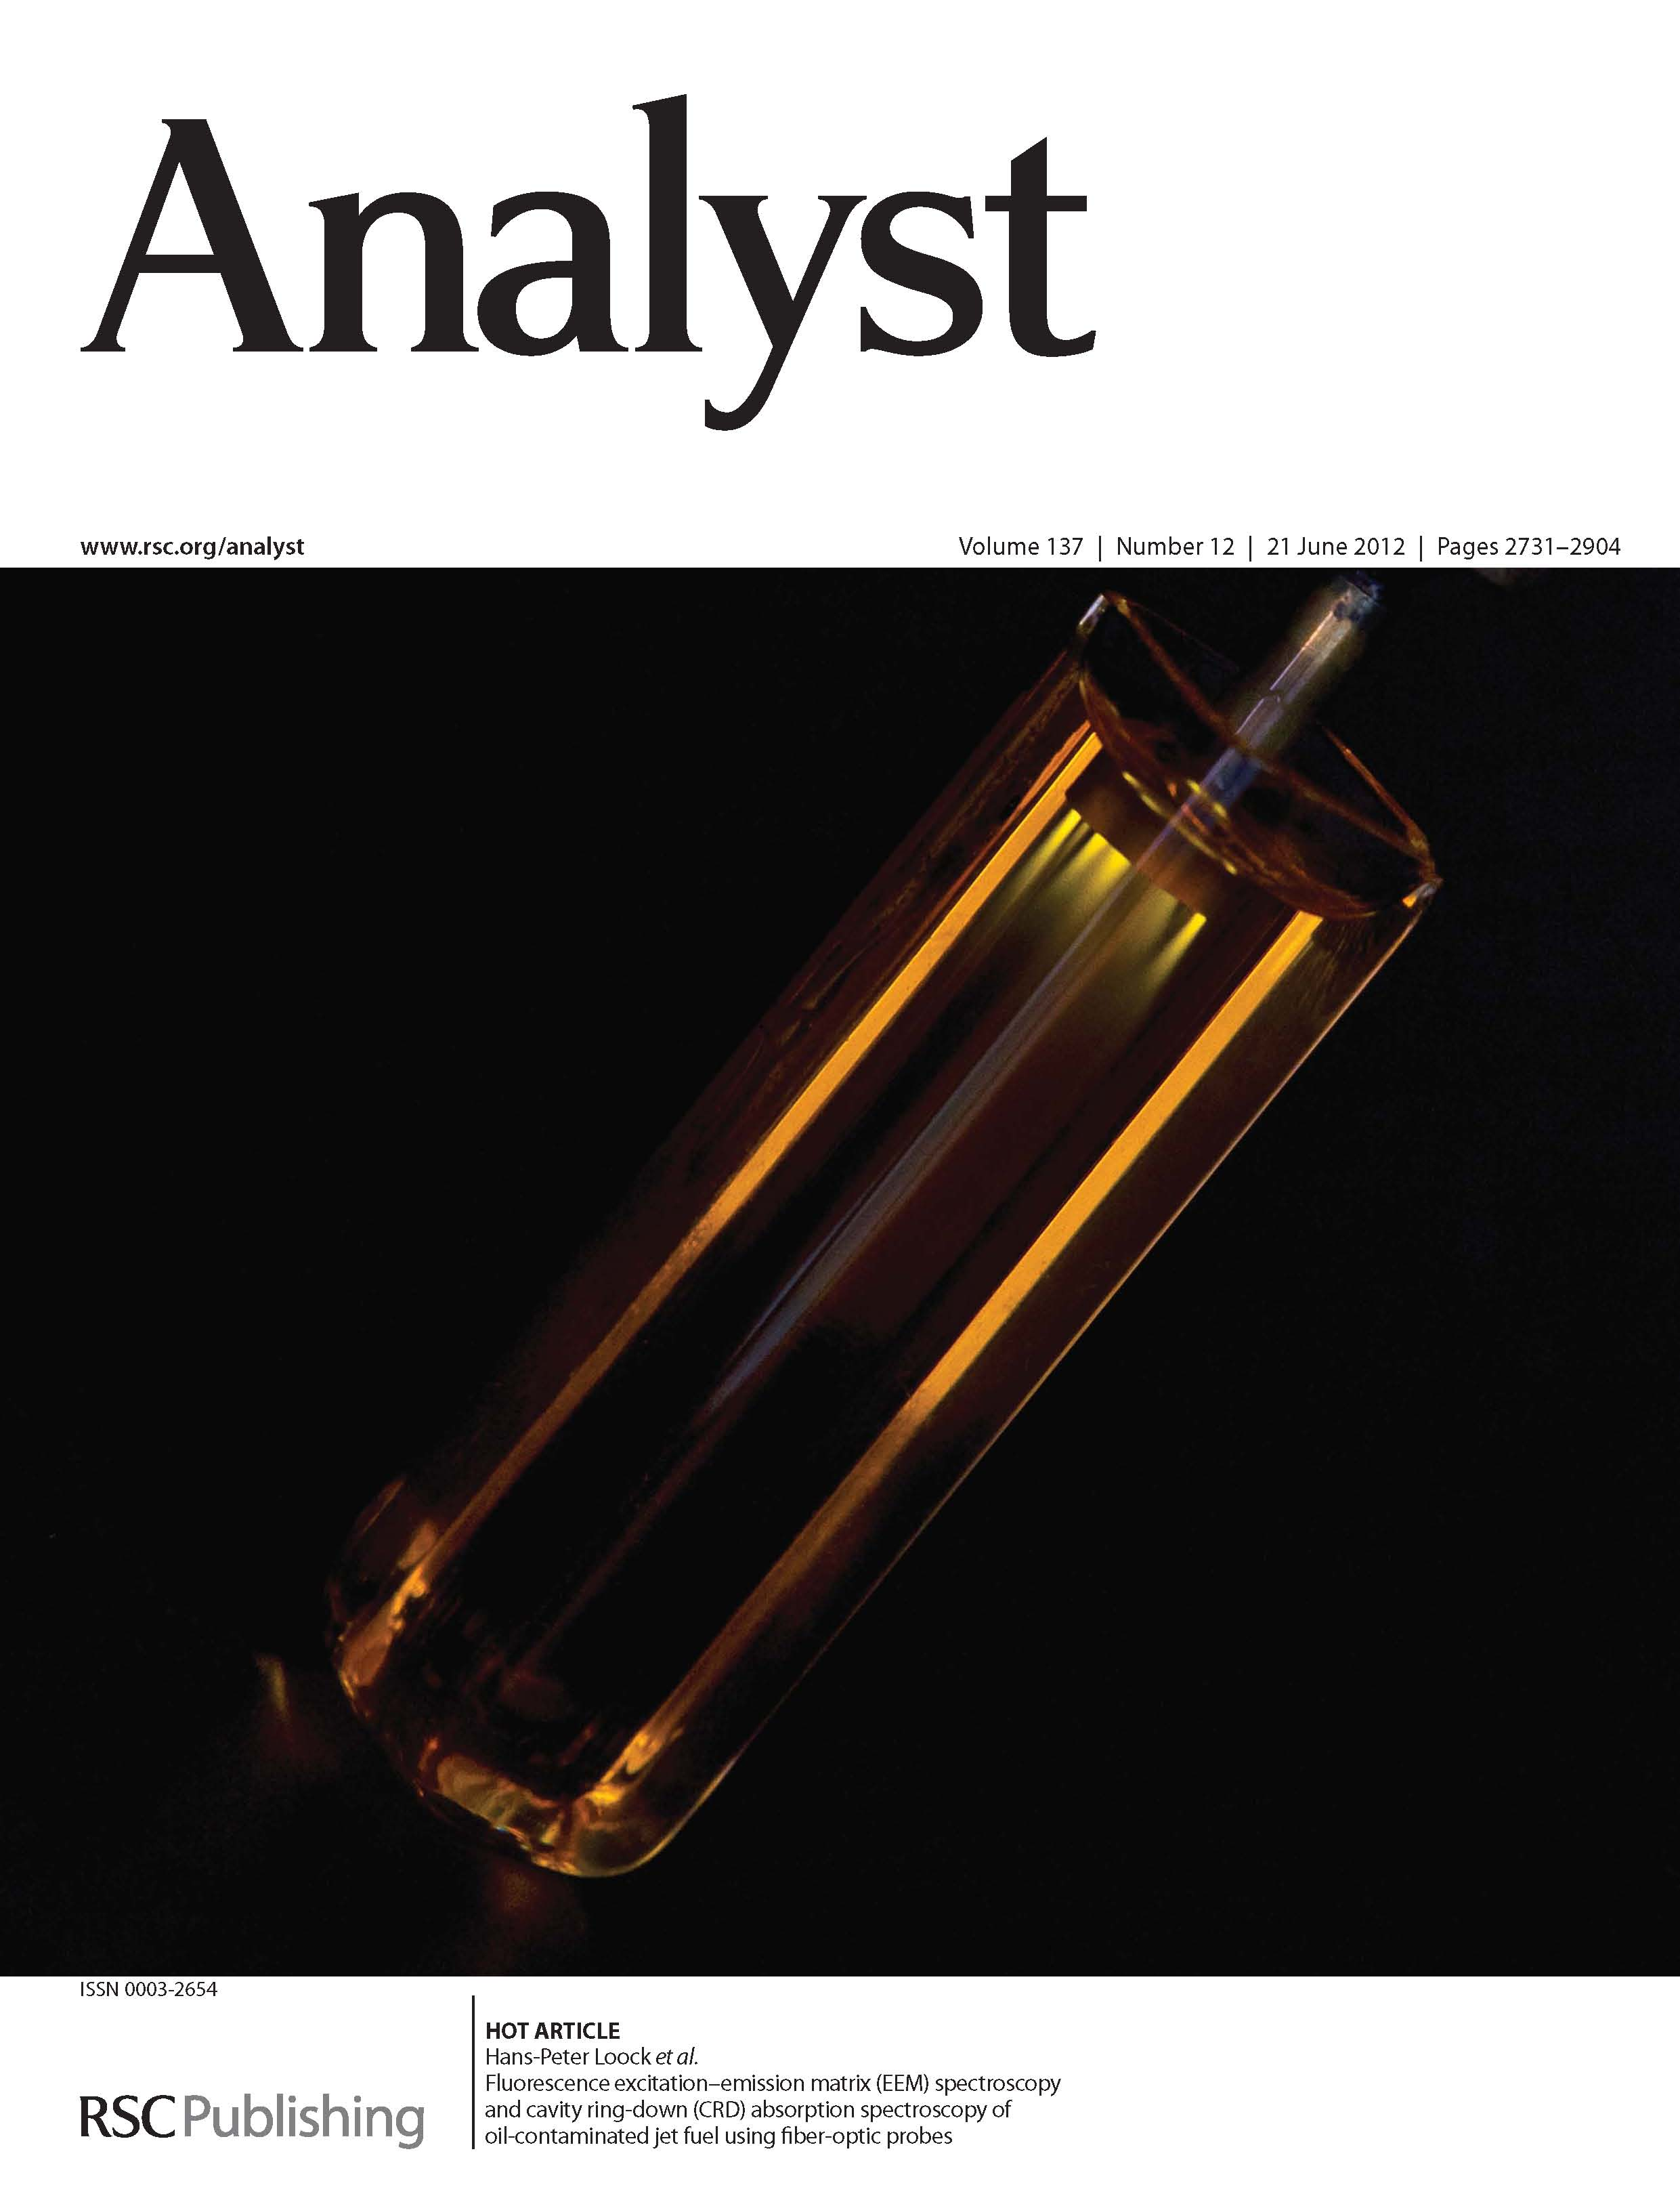 2012 Analyst Fluorescence EEM and Fiber CRD on fuel and oil (cover) - Copy.jpg